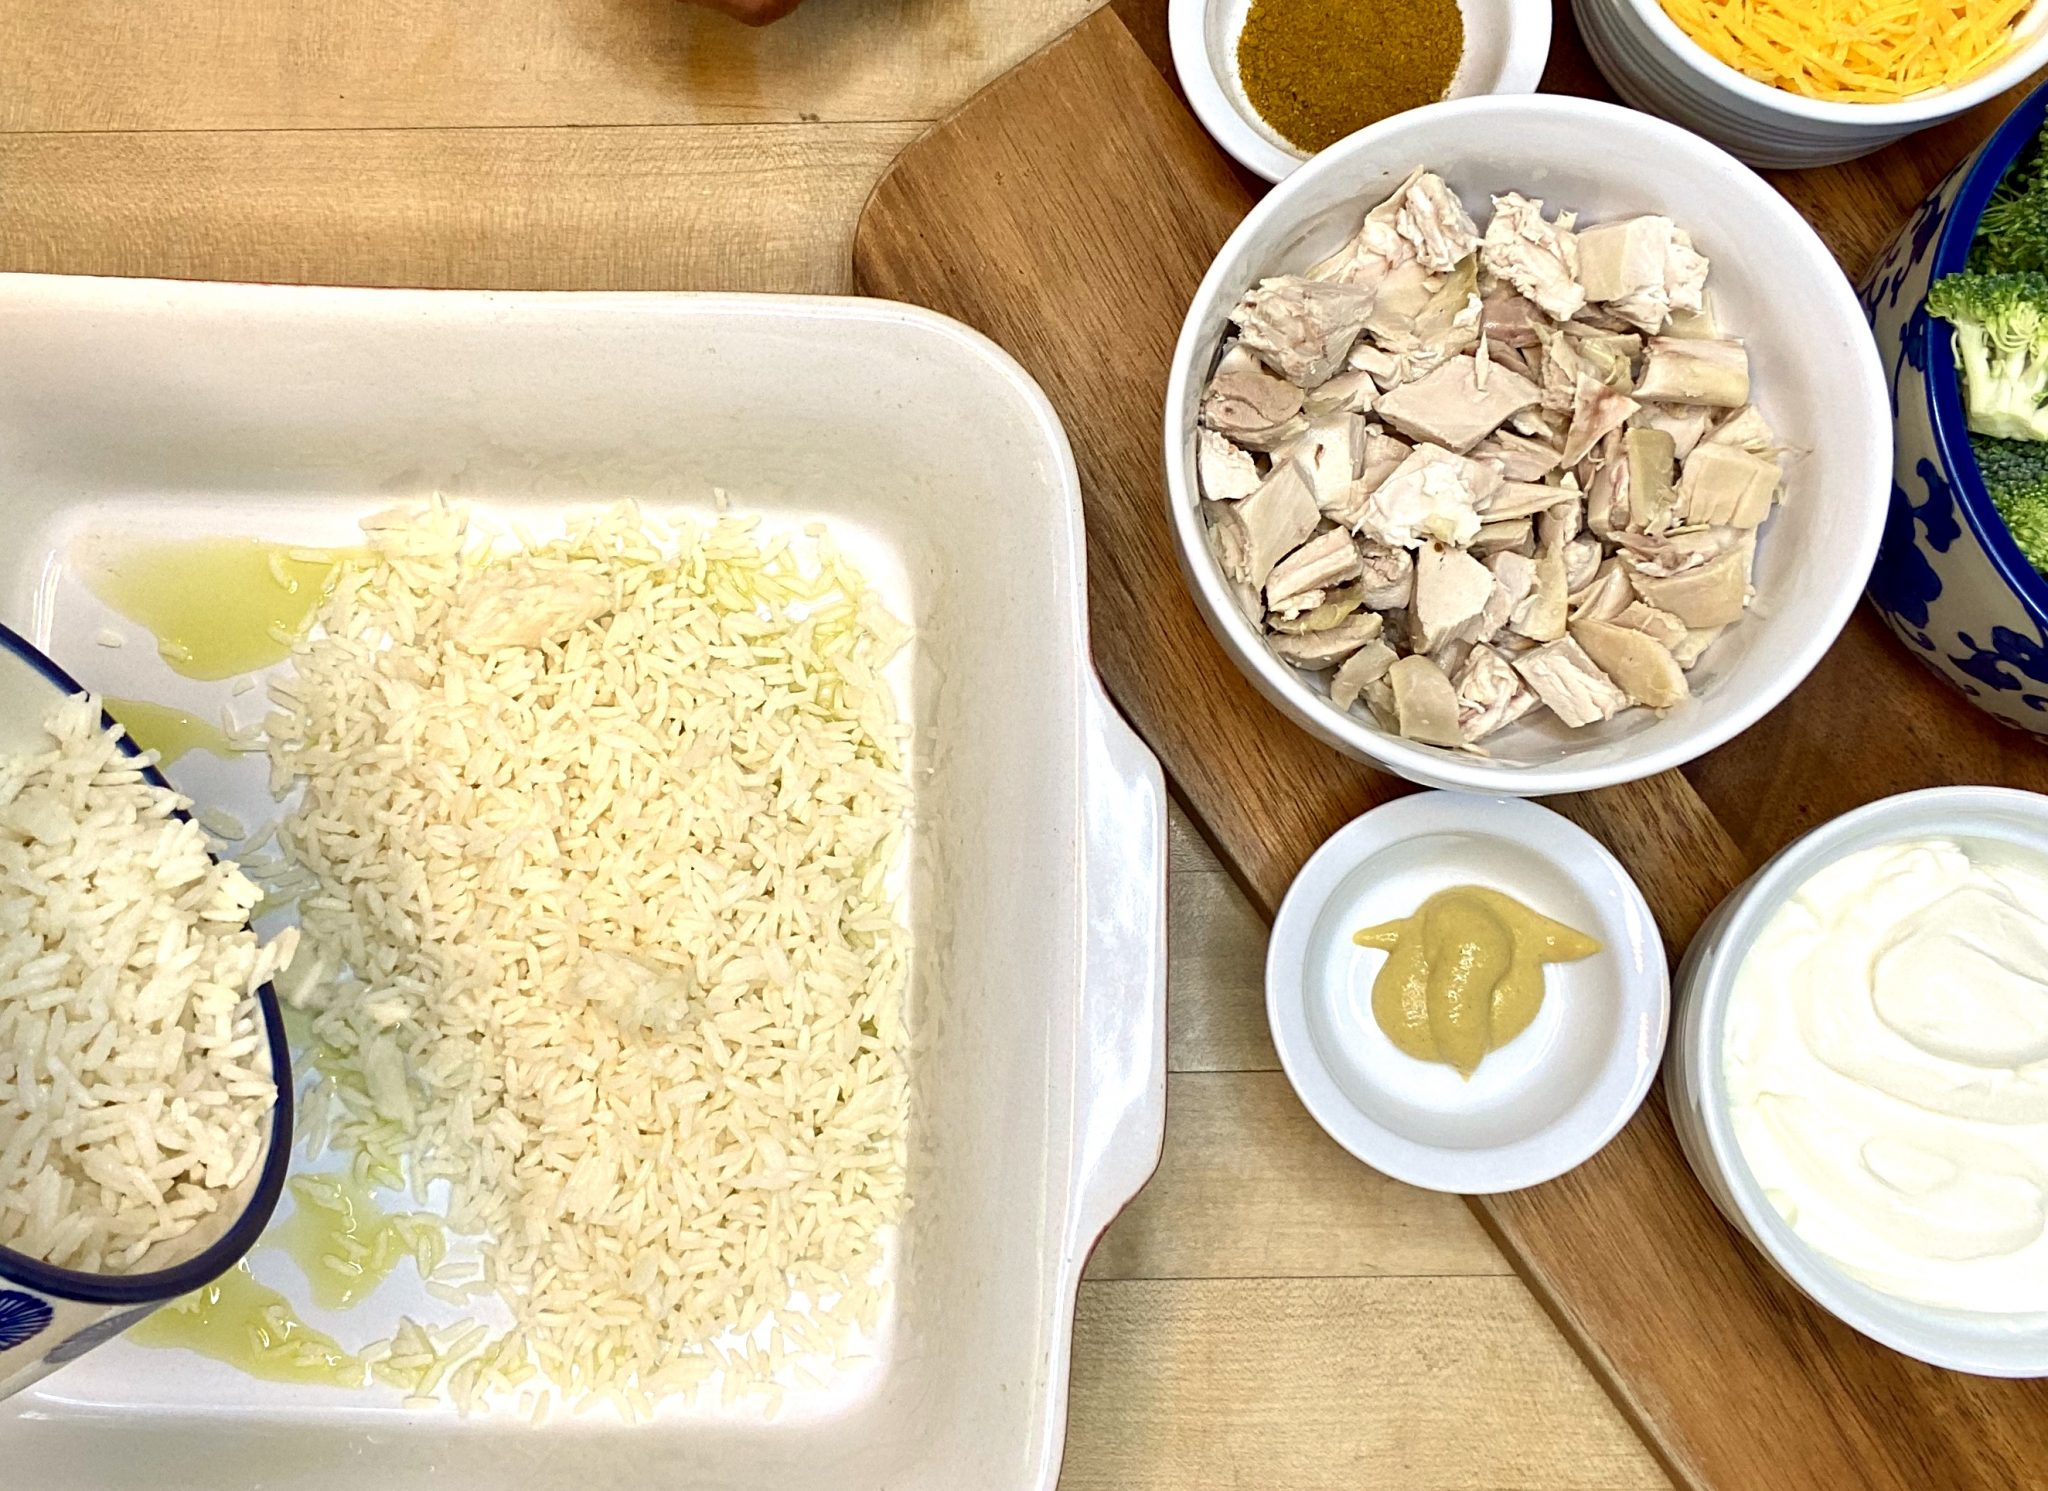 in the midst of preparing Healthy Chicken & Rice Bake with Broccoli Recipe